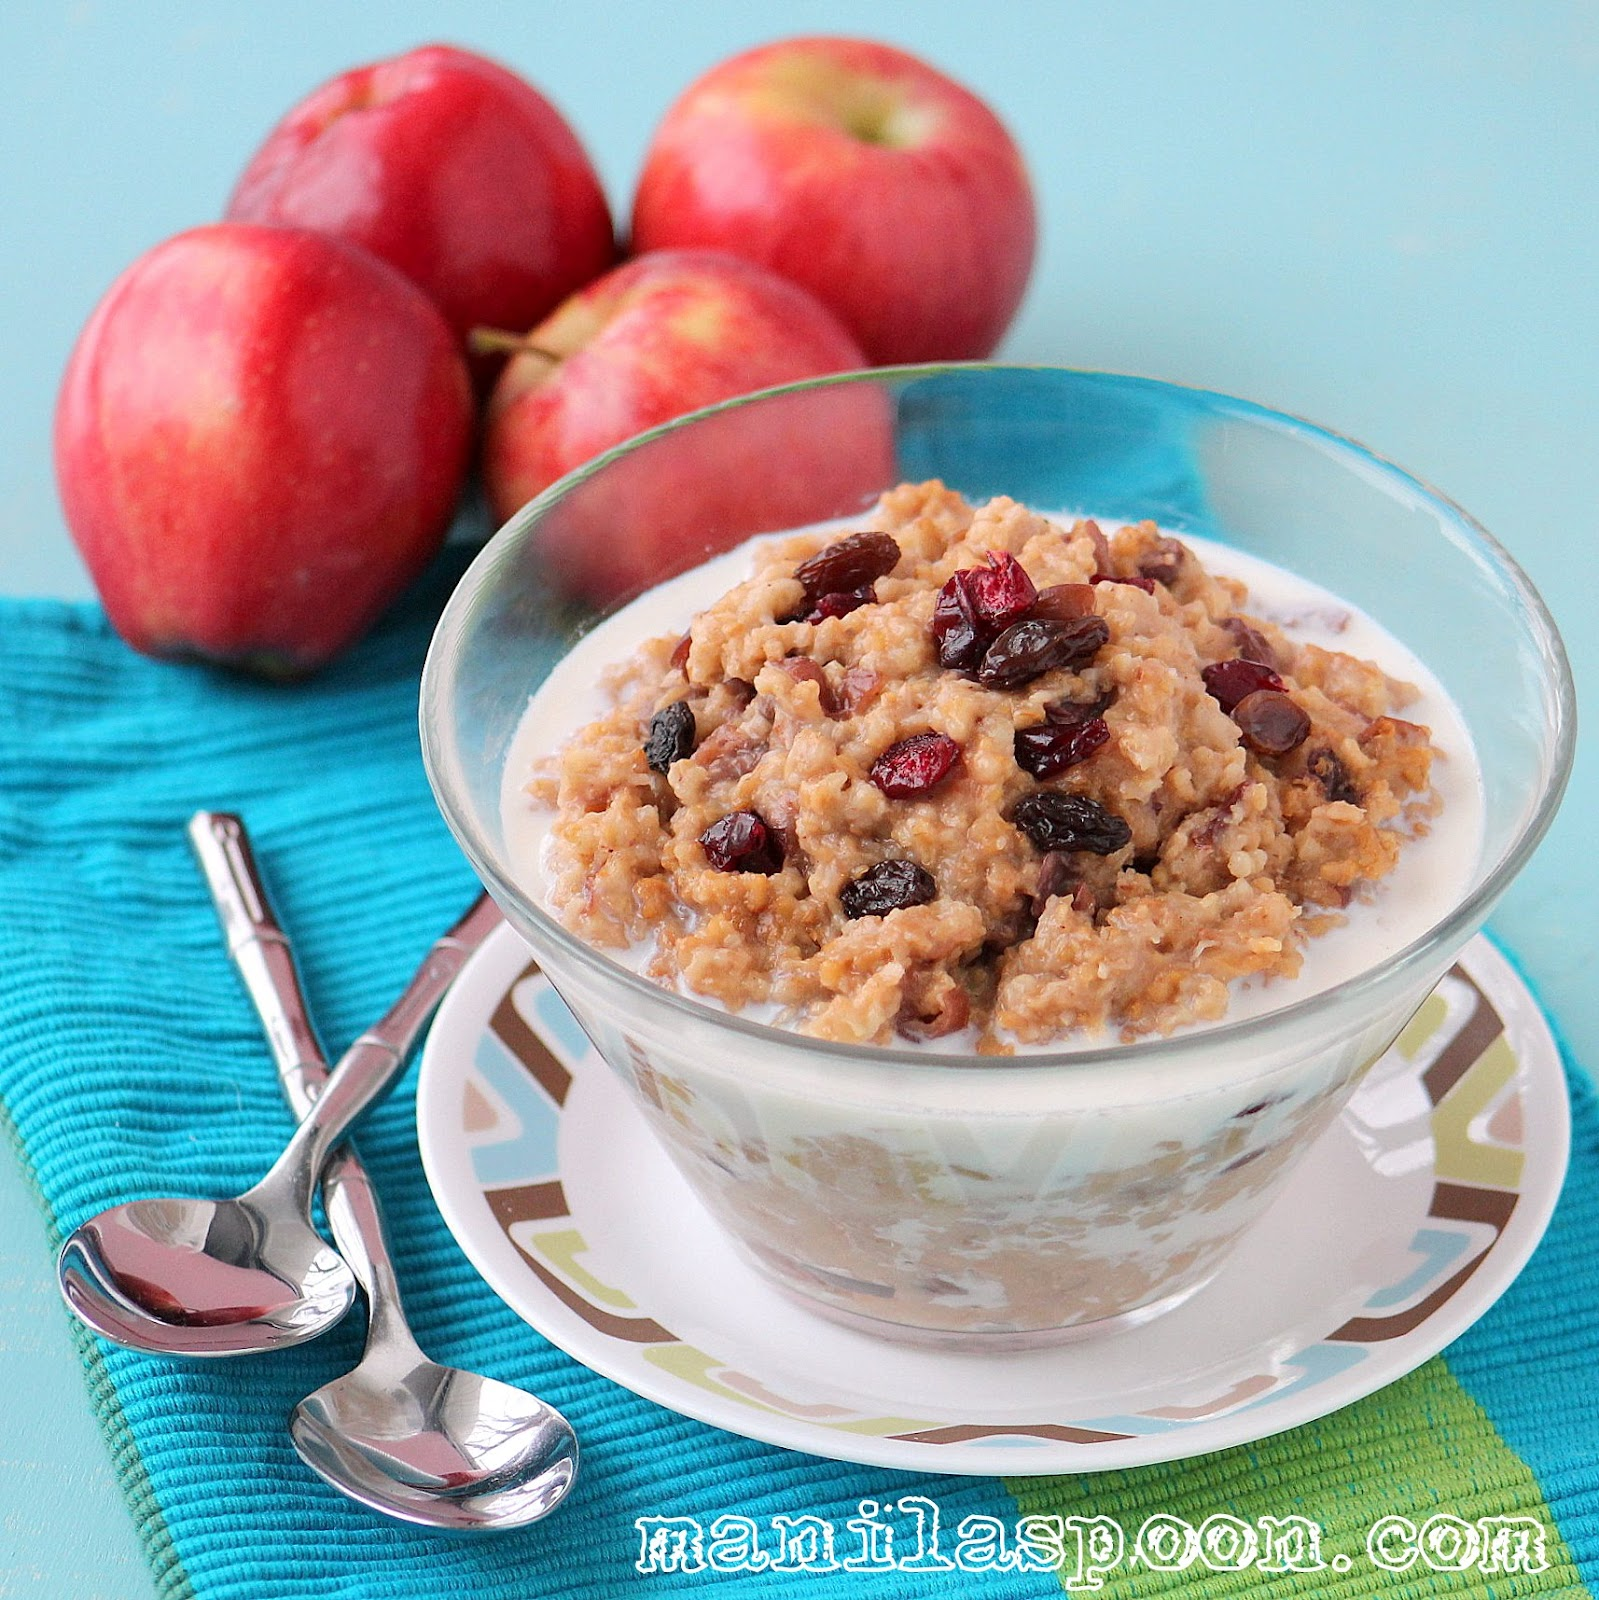 Overnight Steel Cut Oats (with Coconut and Cranberries)